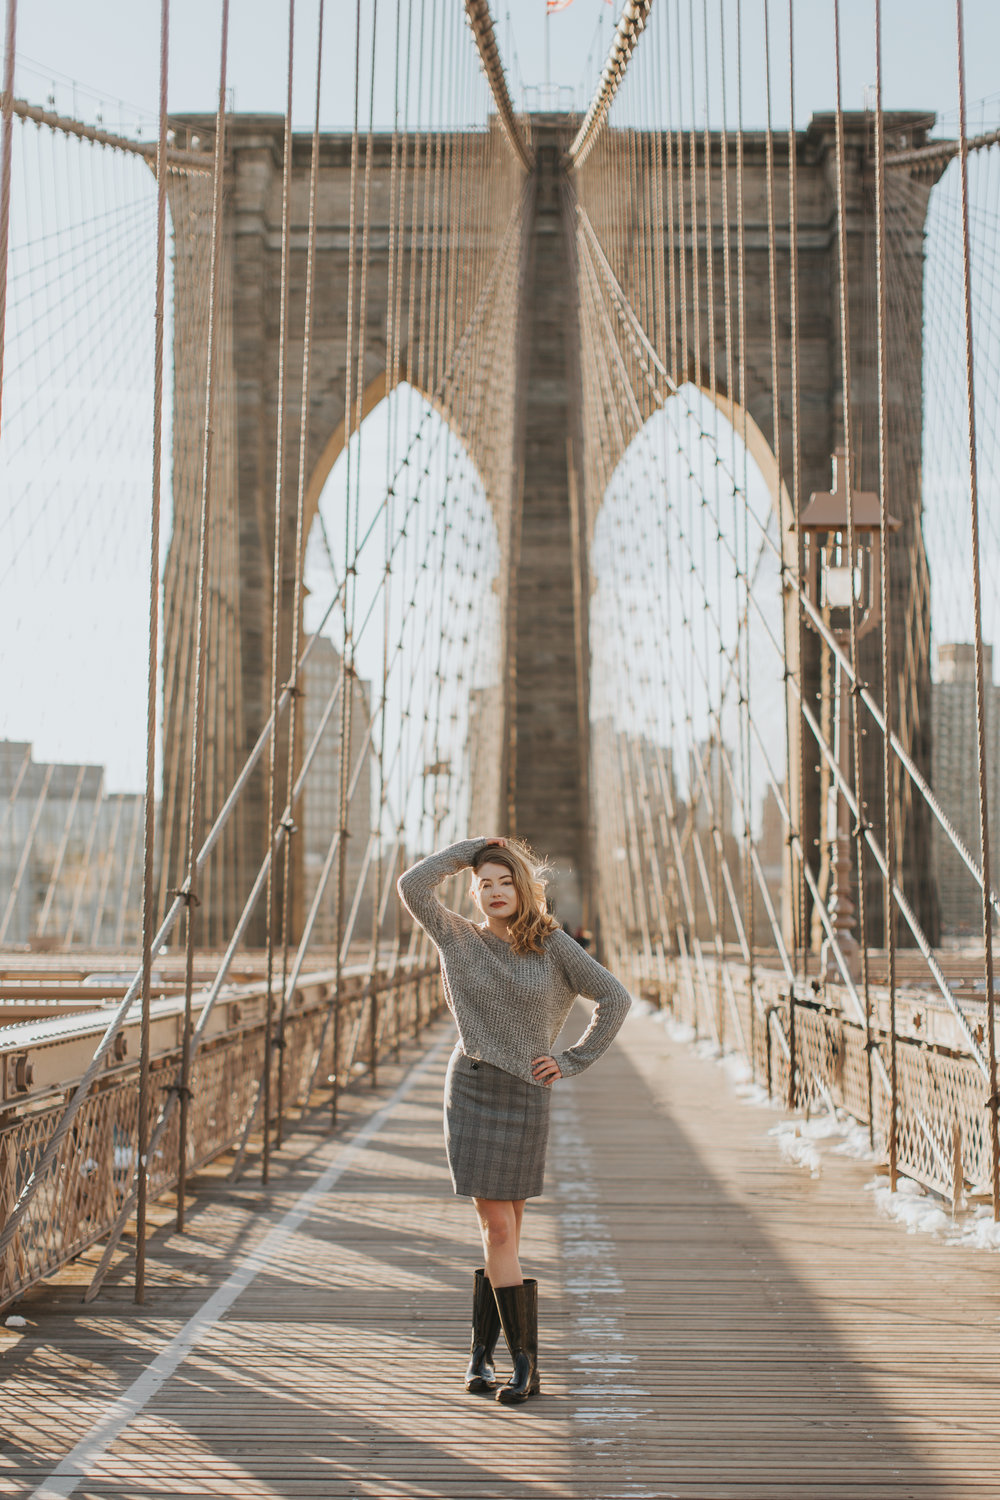 New York City portrait photographer, New york city wedding photographer, Brooklyn bridge portrait, brooklyn bridge photos, brooklyn bridge sunrise session, Brooklyn bridge inspiration519.JPG